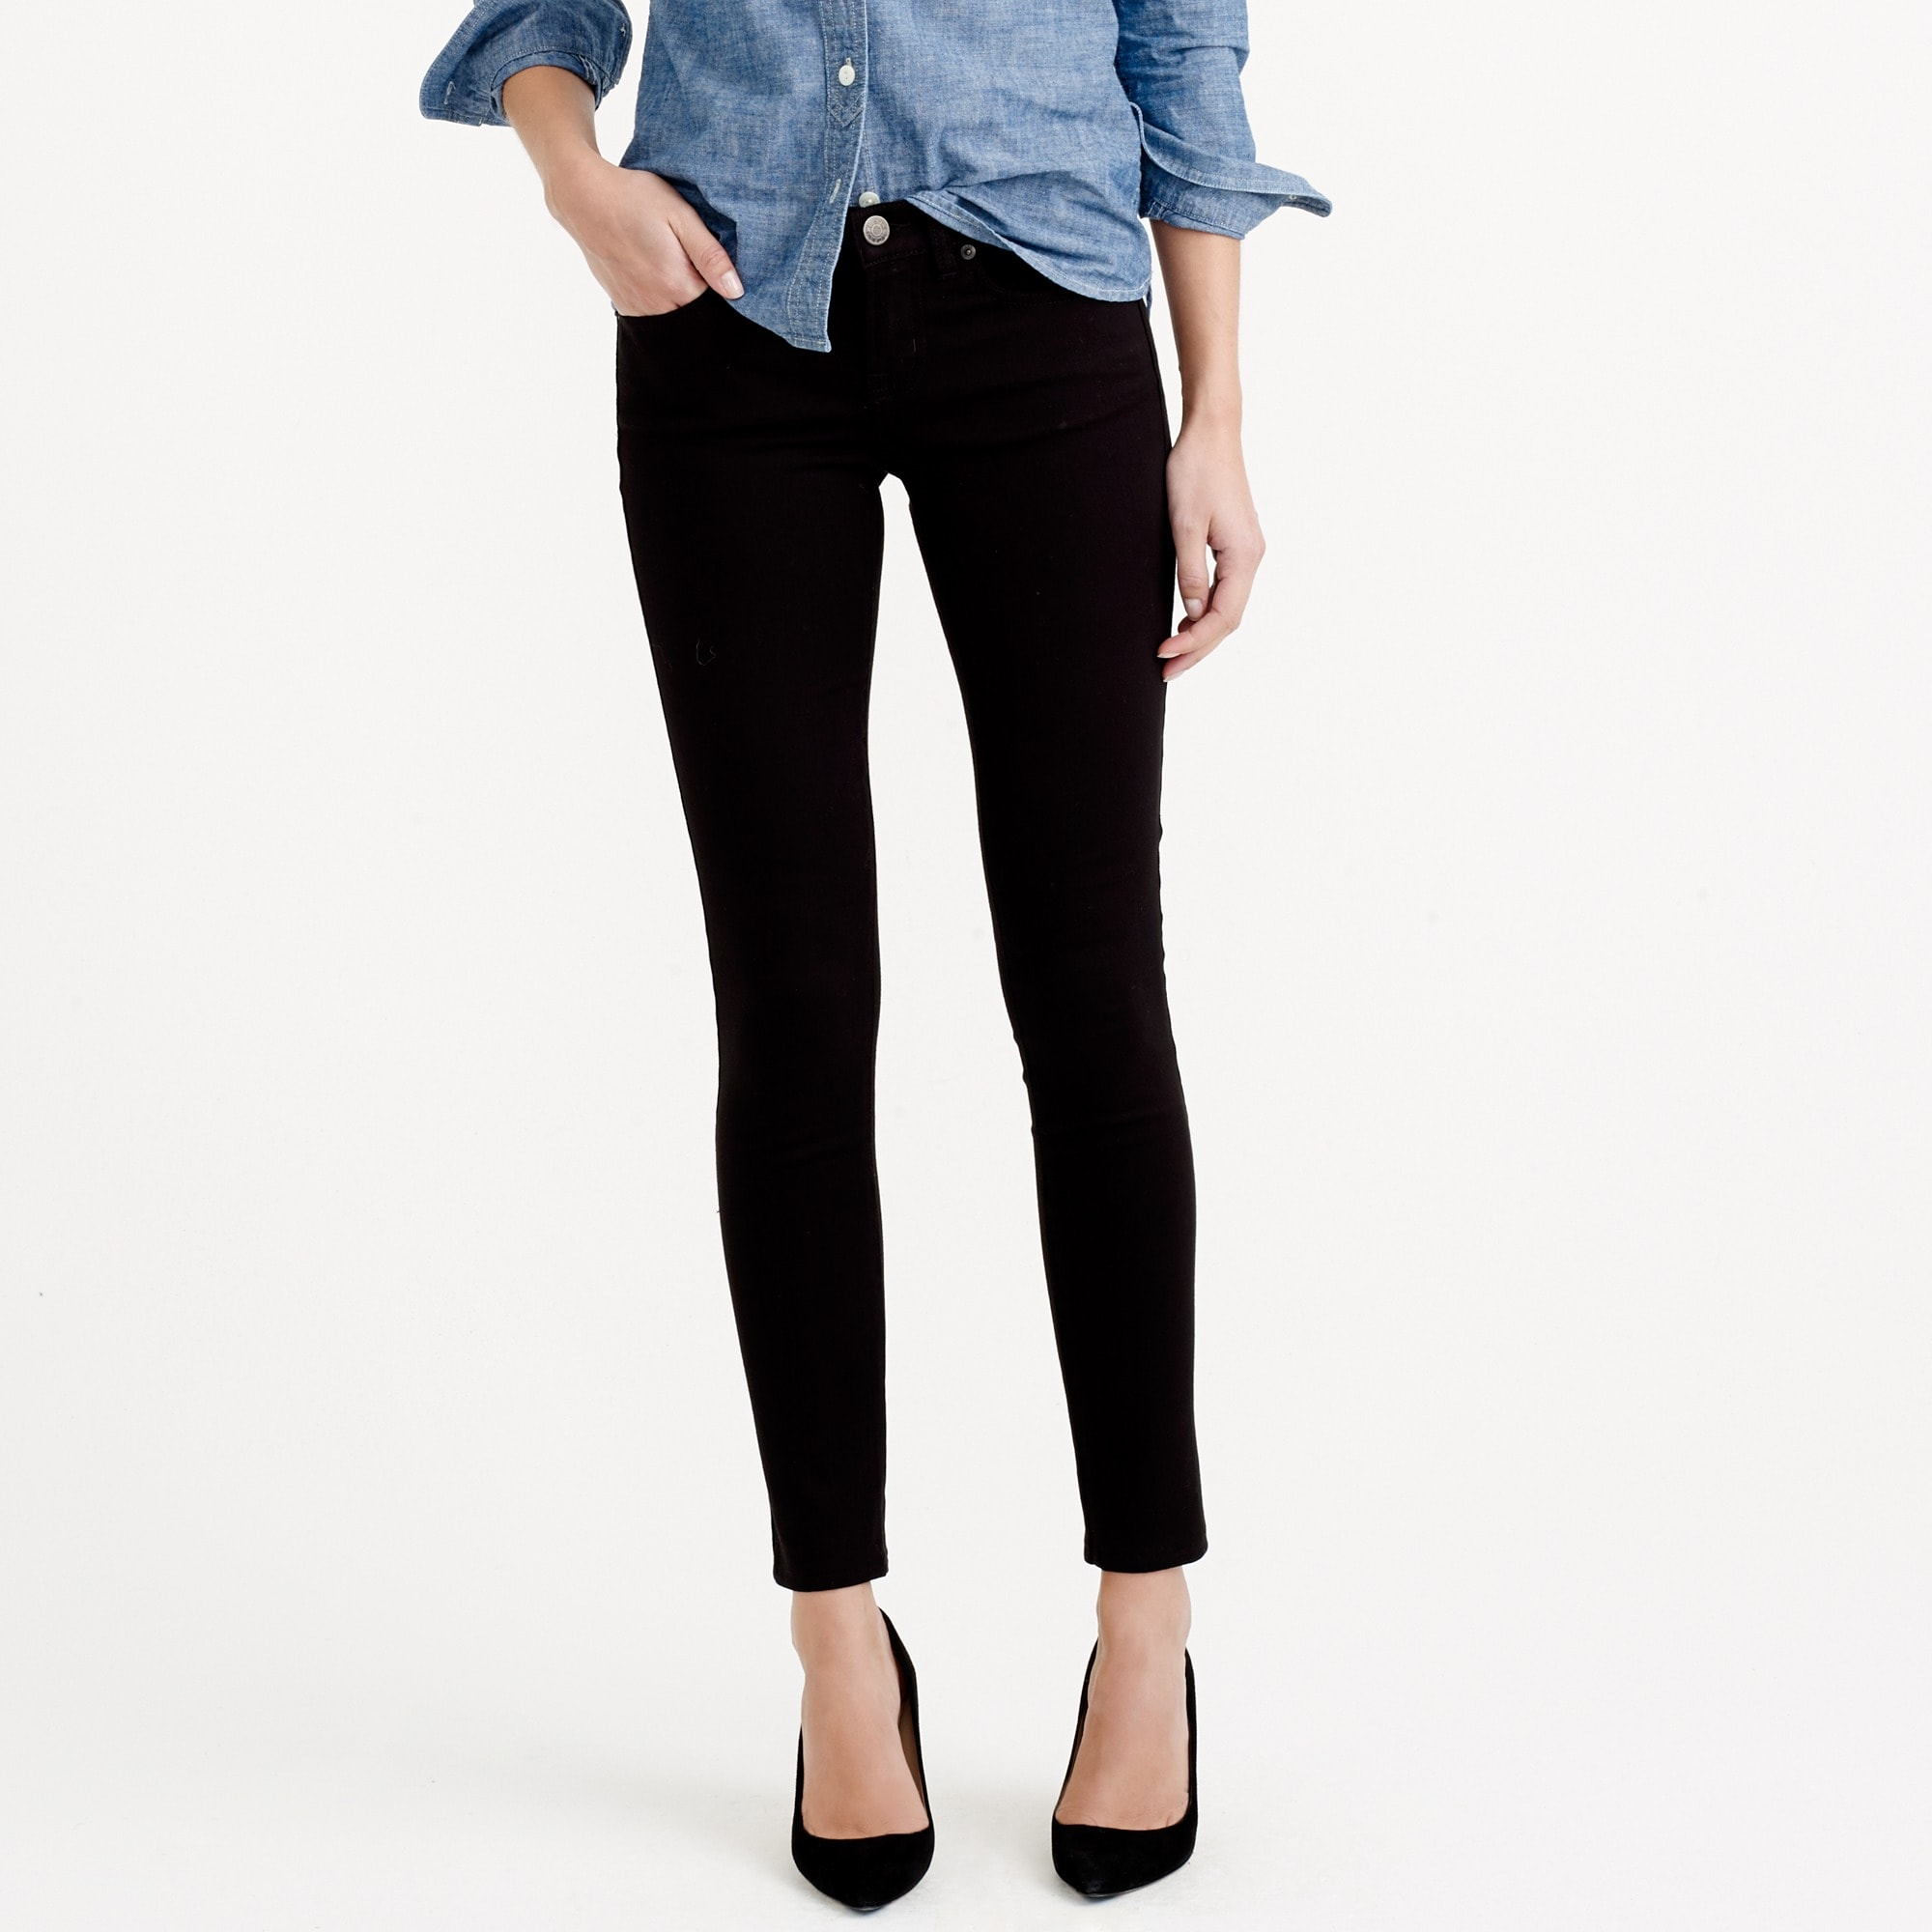 toothpick jean in black : women's jeans